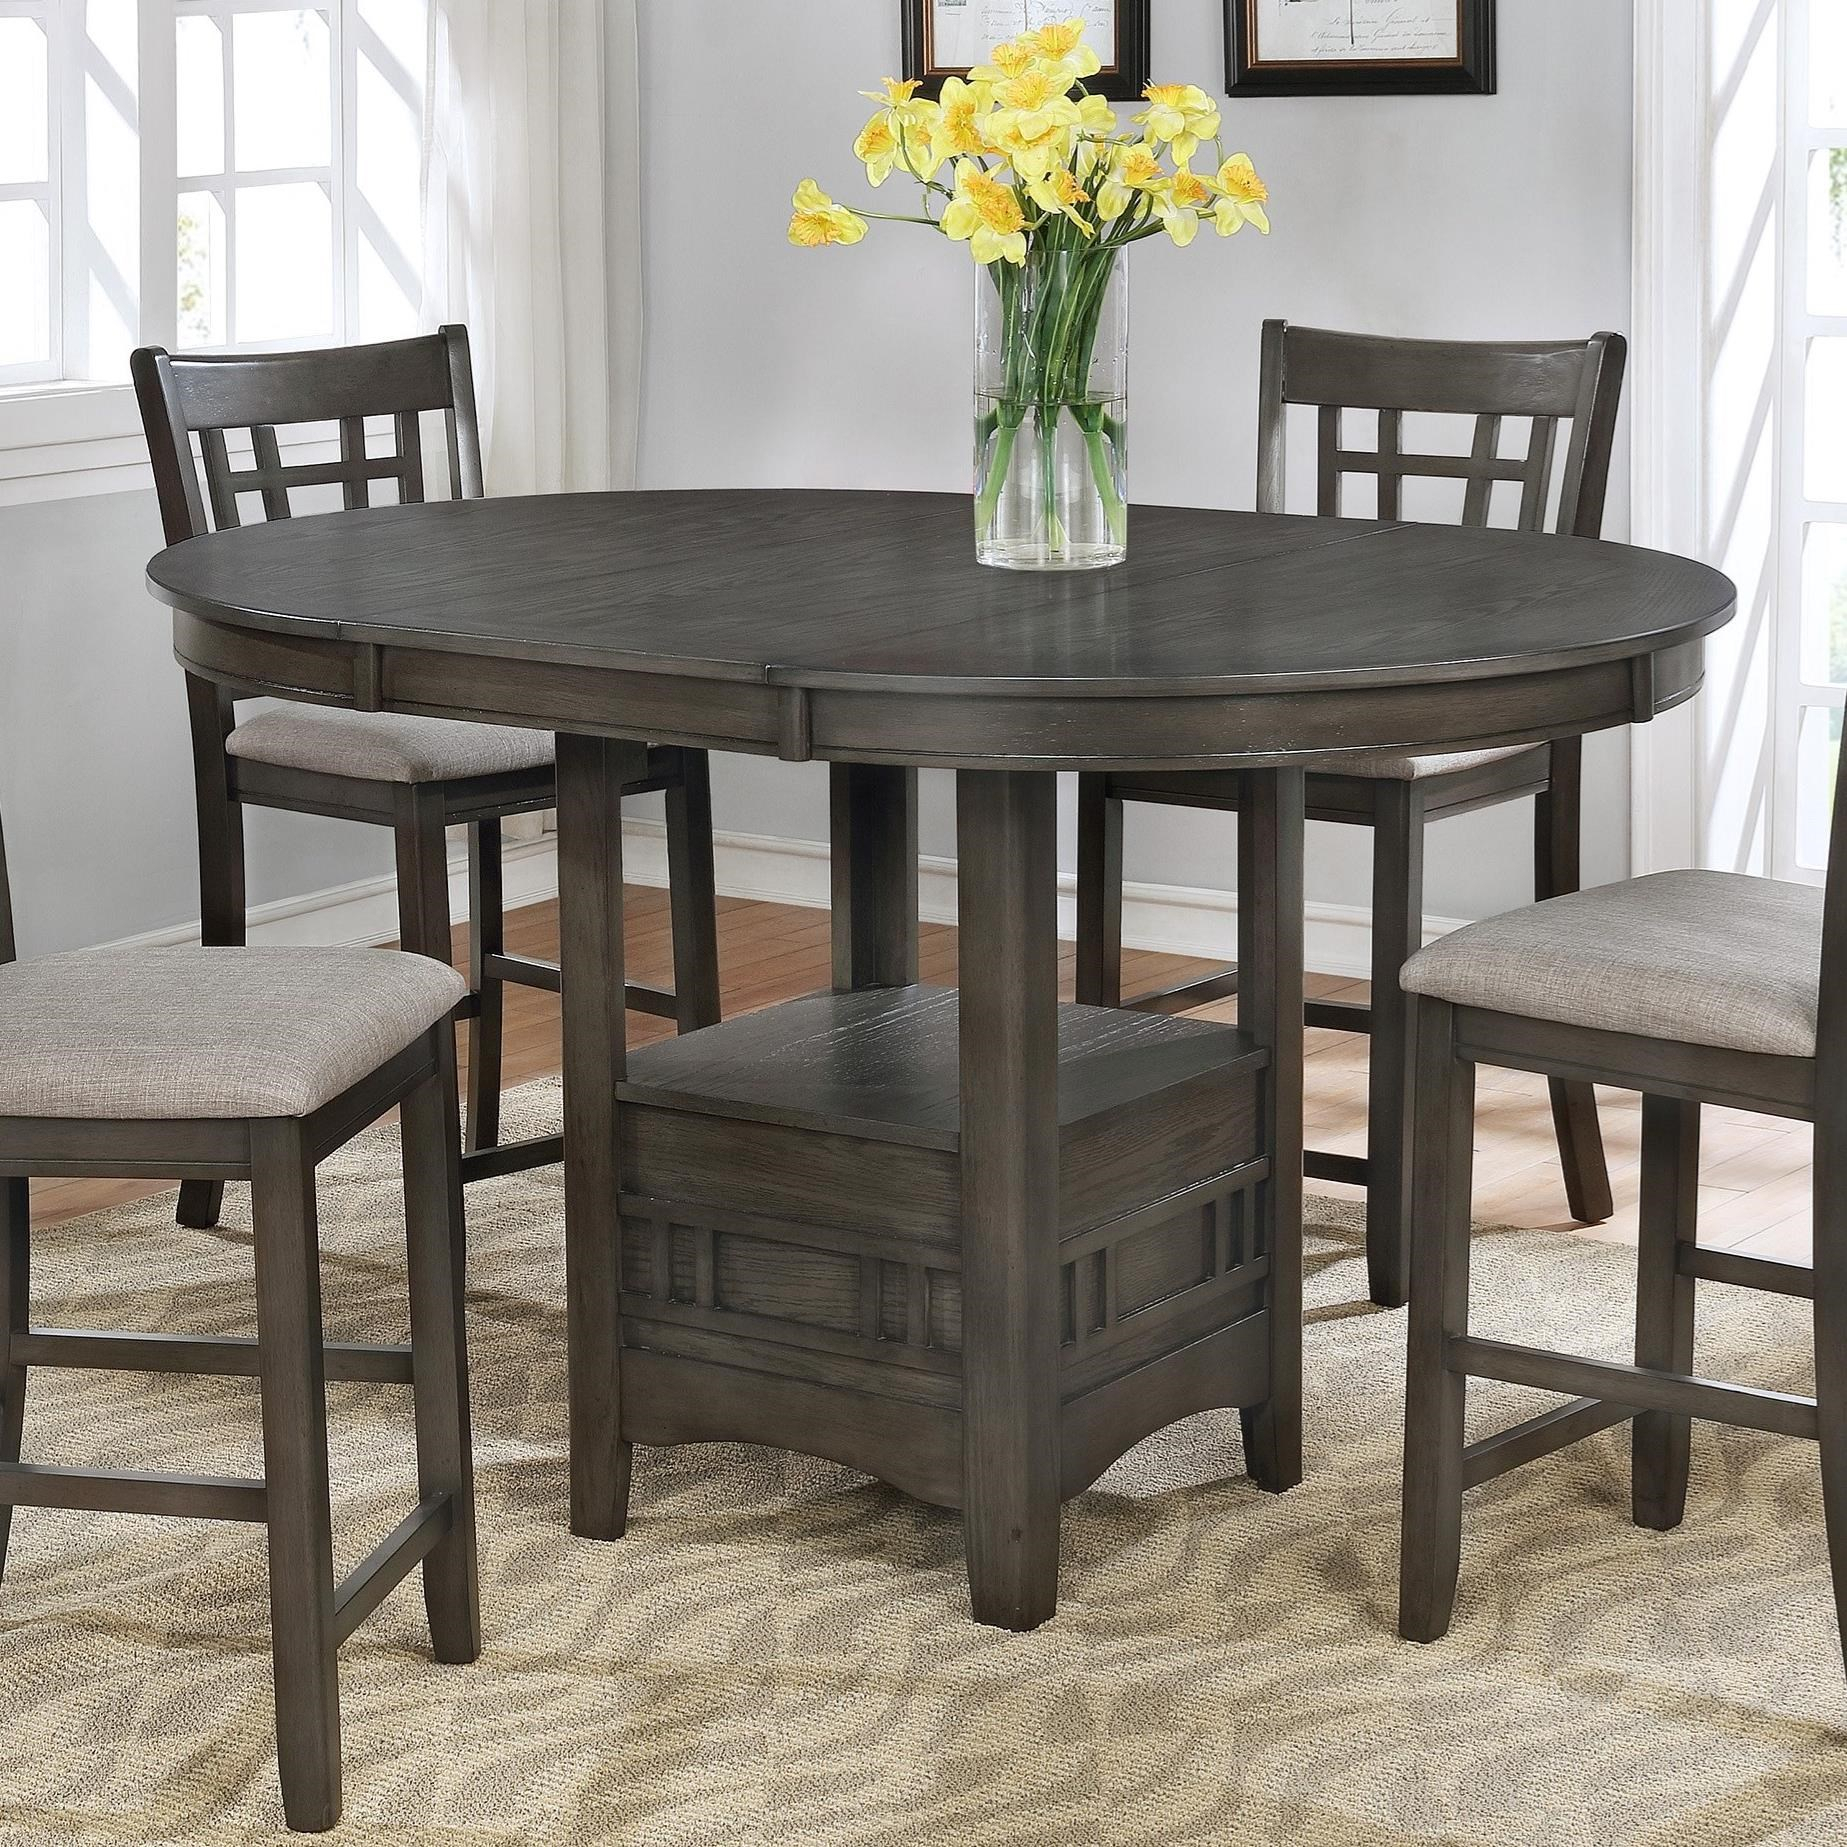 Crown Mark Hartwell Single Pedestal Counter Height Pub Pertaining To Recent Counter Height Pedestal Dining Tables (View 2 of 15)